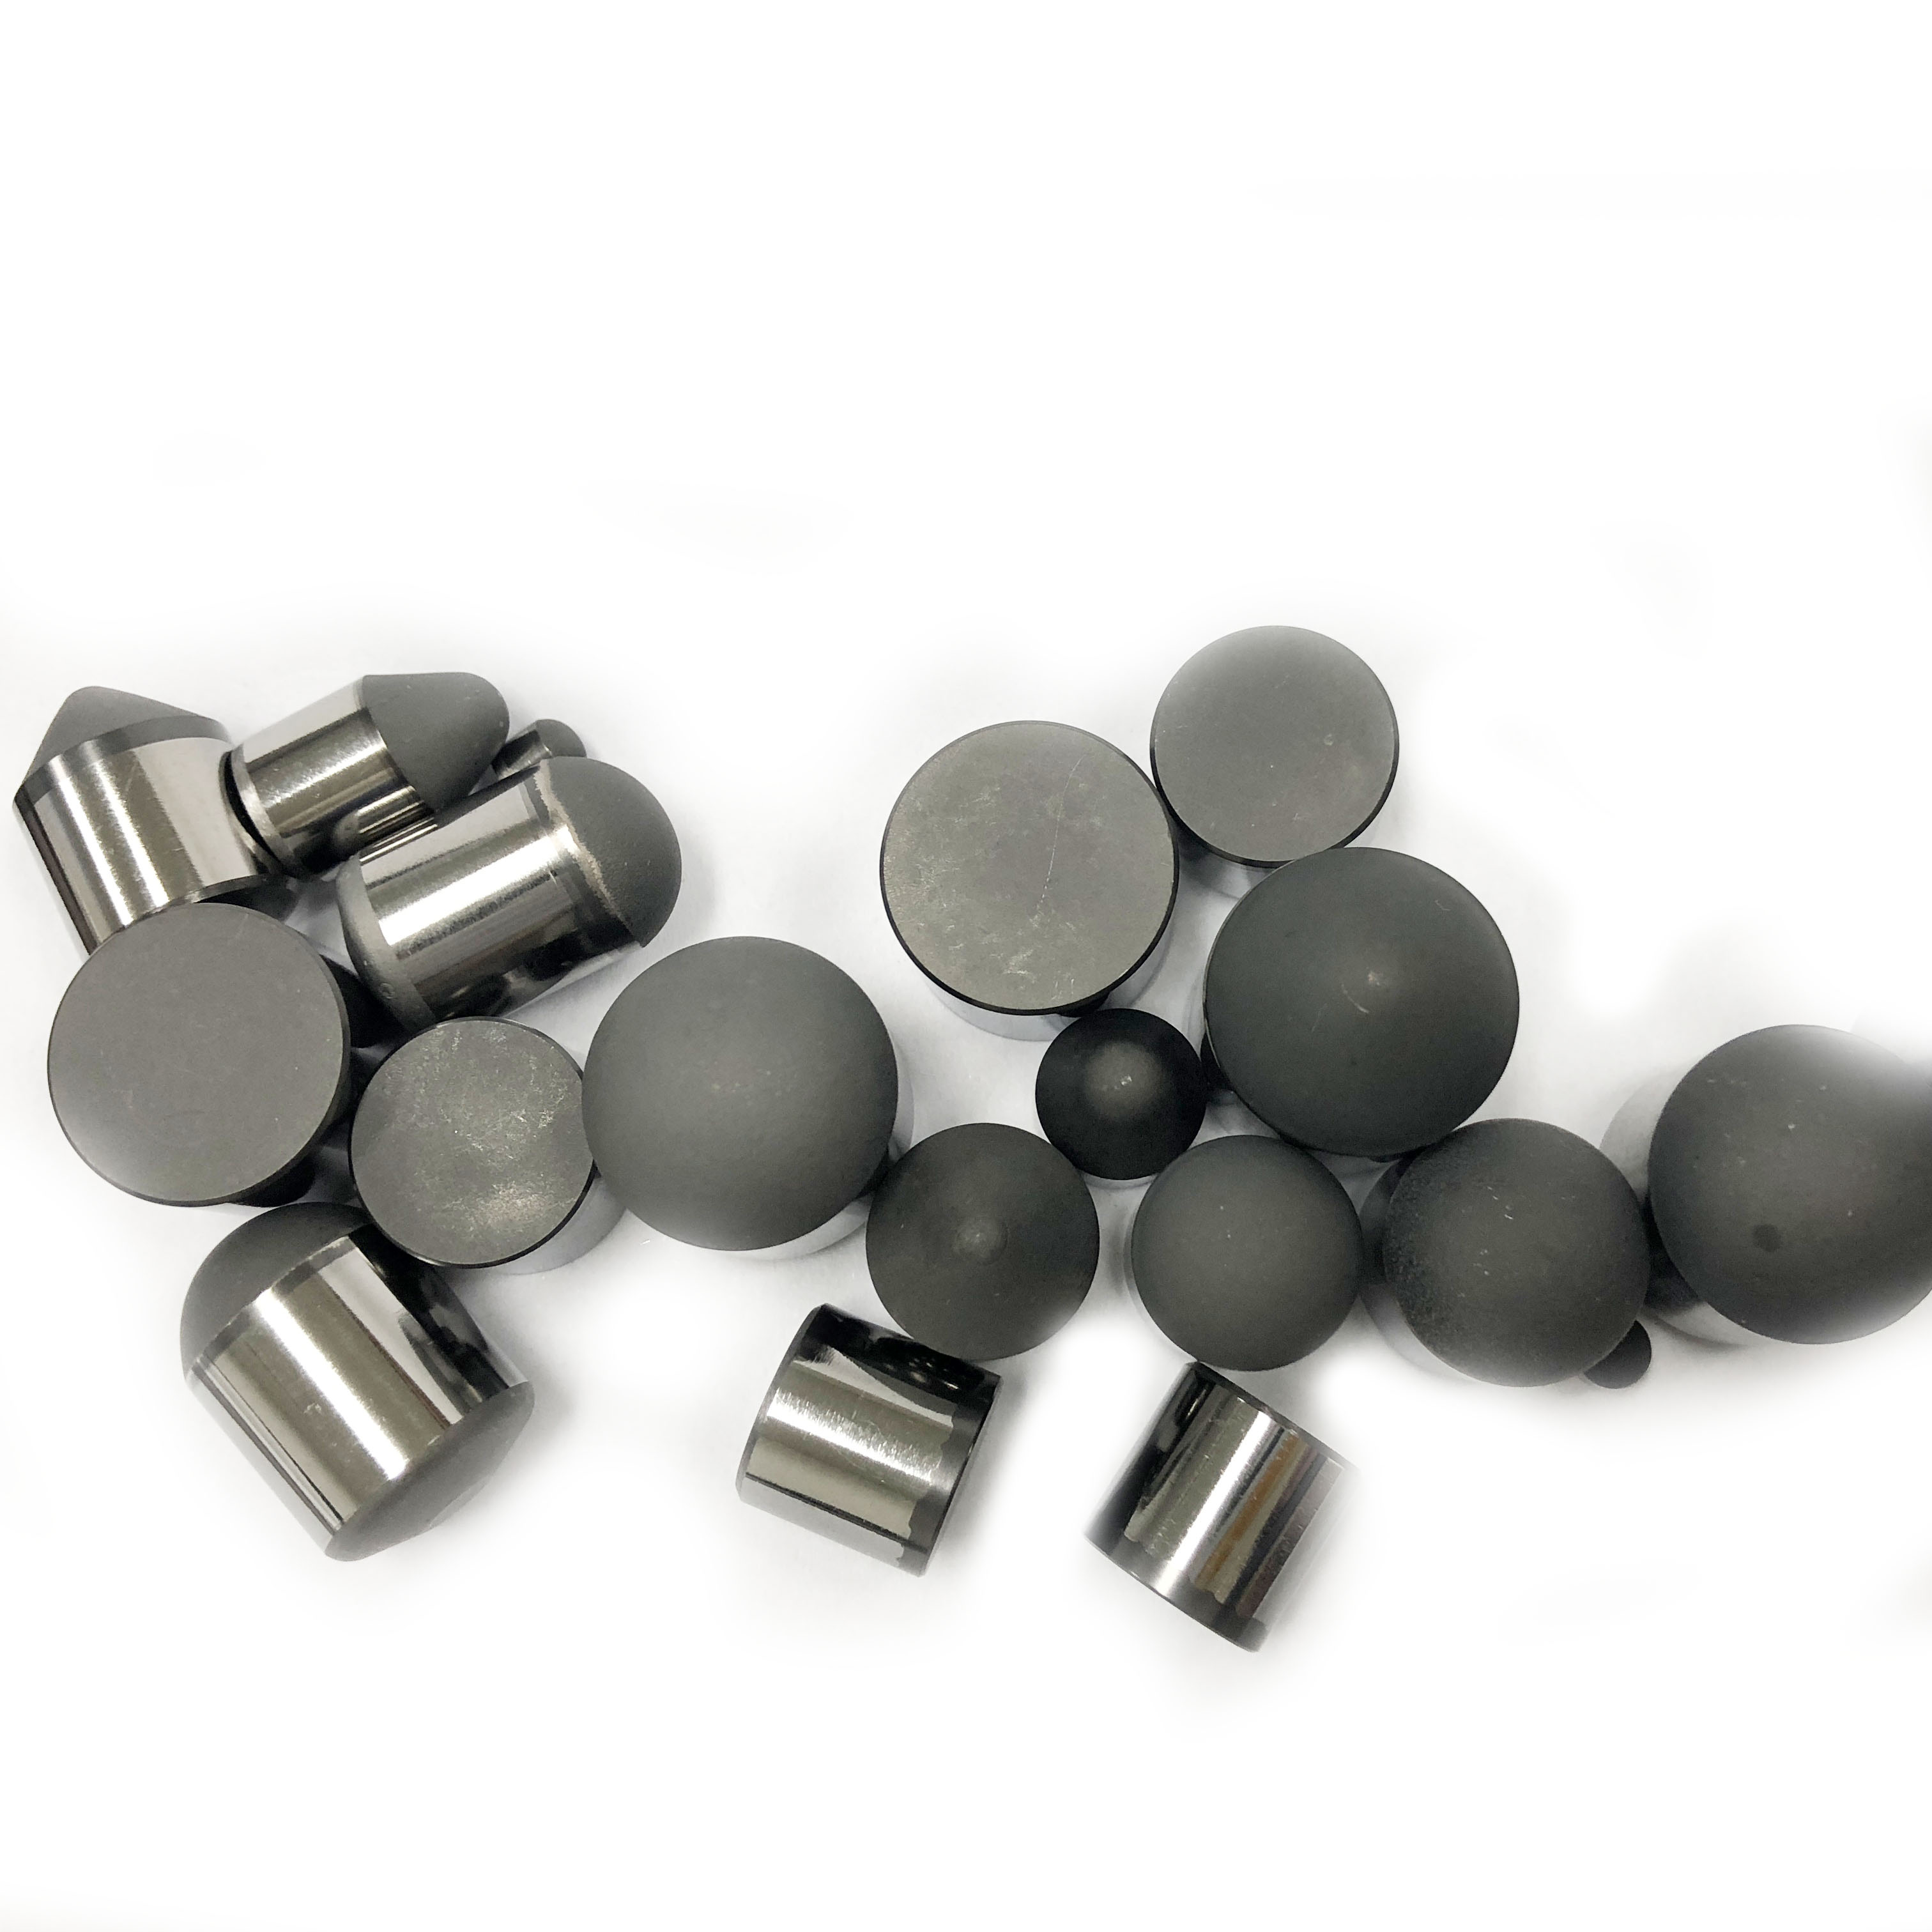 DTH bits/tricone bit PDC buttons